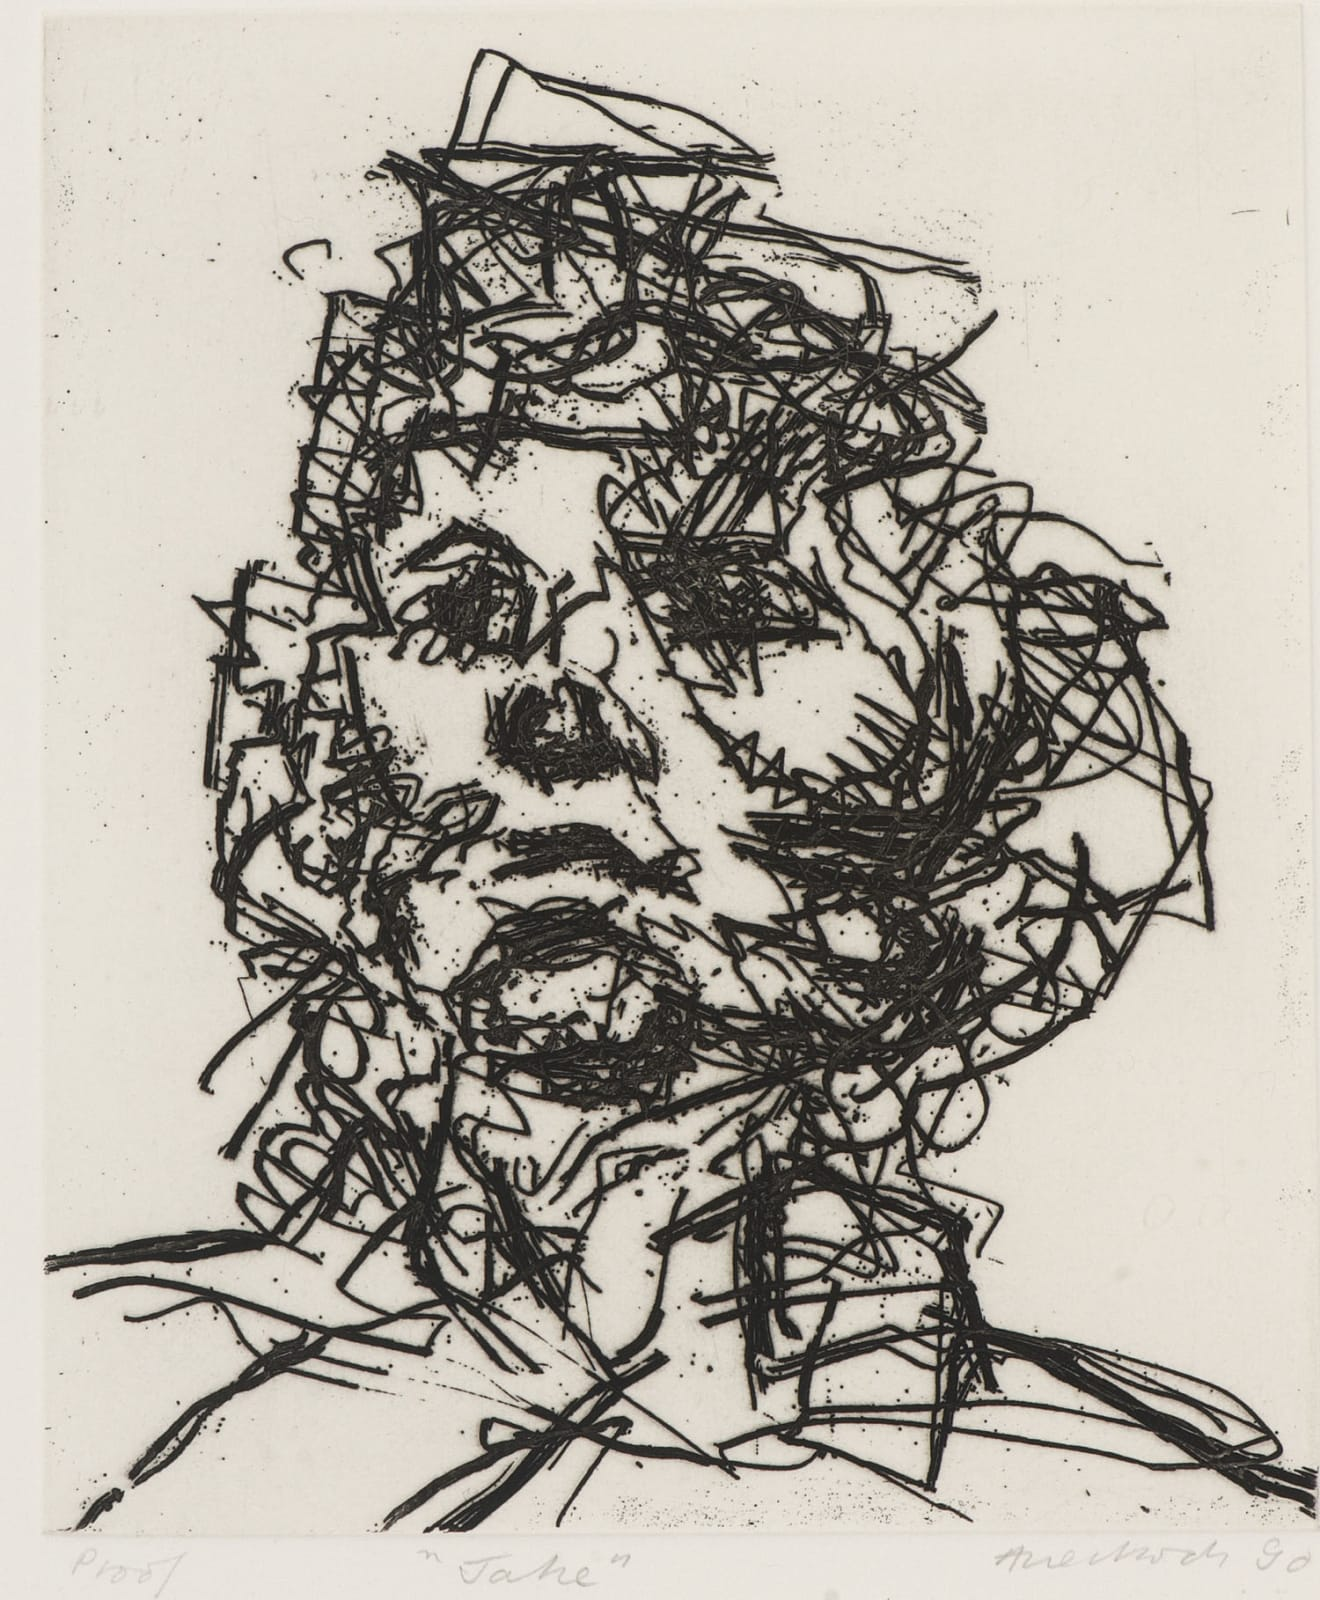 Frank Auerbach (1931-) Jake, Series: Part of Seven Portraits 1990 Etching, printed on Somerset white paper, artist's proof outside the published edition of 50 20 x 16.5 cm Ben Uri Collection © Frank Auerbach, courtesy Marlborough Fine Art To see and discover more about this artist click here